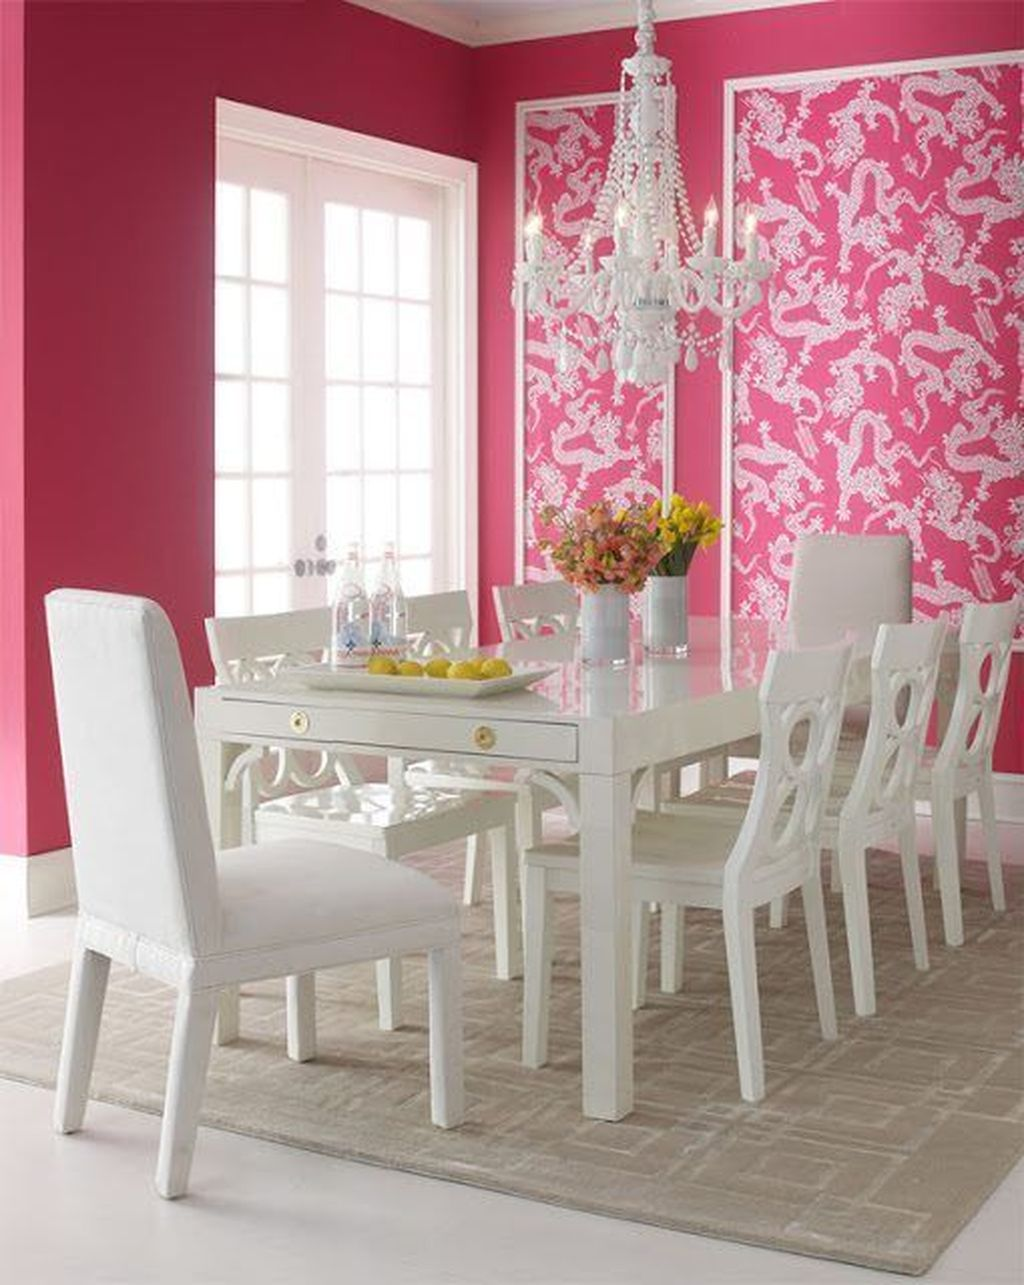 Stunning Romantic Dining Room Decor Ideas Best For Valentines Day 17